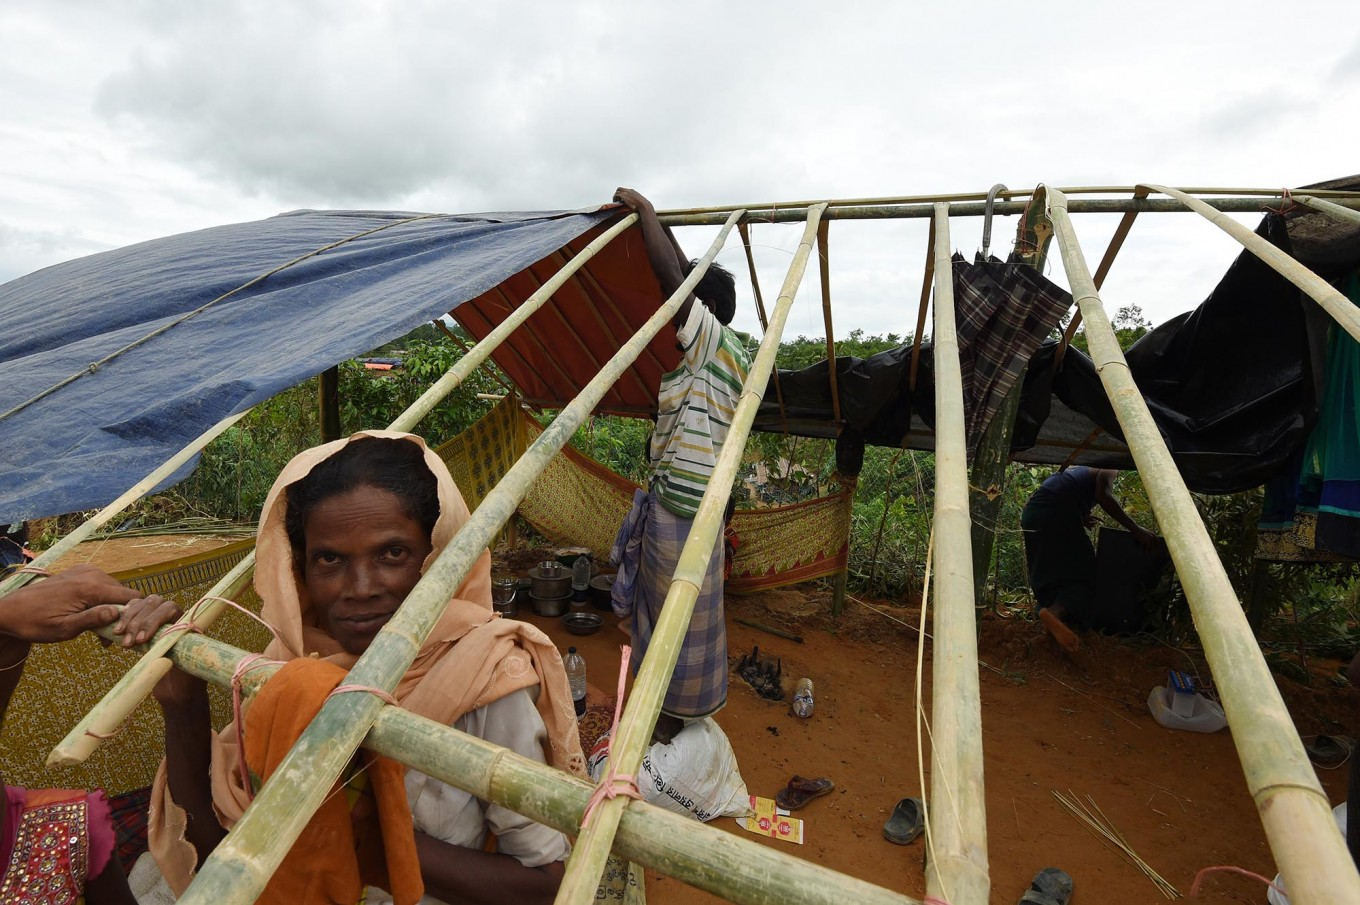 Rohingya refugees build a new makeshift shelters in the refugee camp of Thyangkhali near the Bangladeshi village of Gumdhum, on September 18, 2017.  More than 400,000 Rohingya Muslims have now arrived in Bangladesh from their Buddhist dominated homeland to escape violence that the United Nations says could be ethnic cleansing. AFP/ Dominique Faget